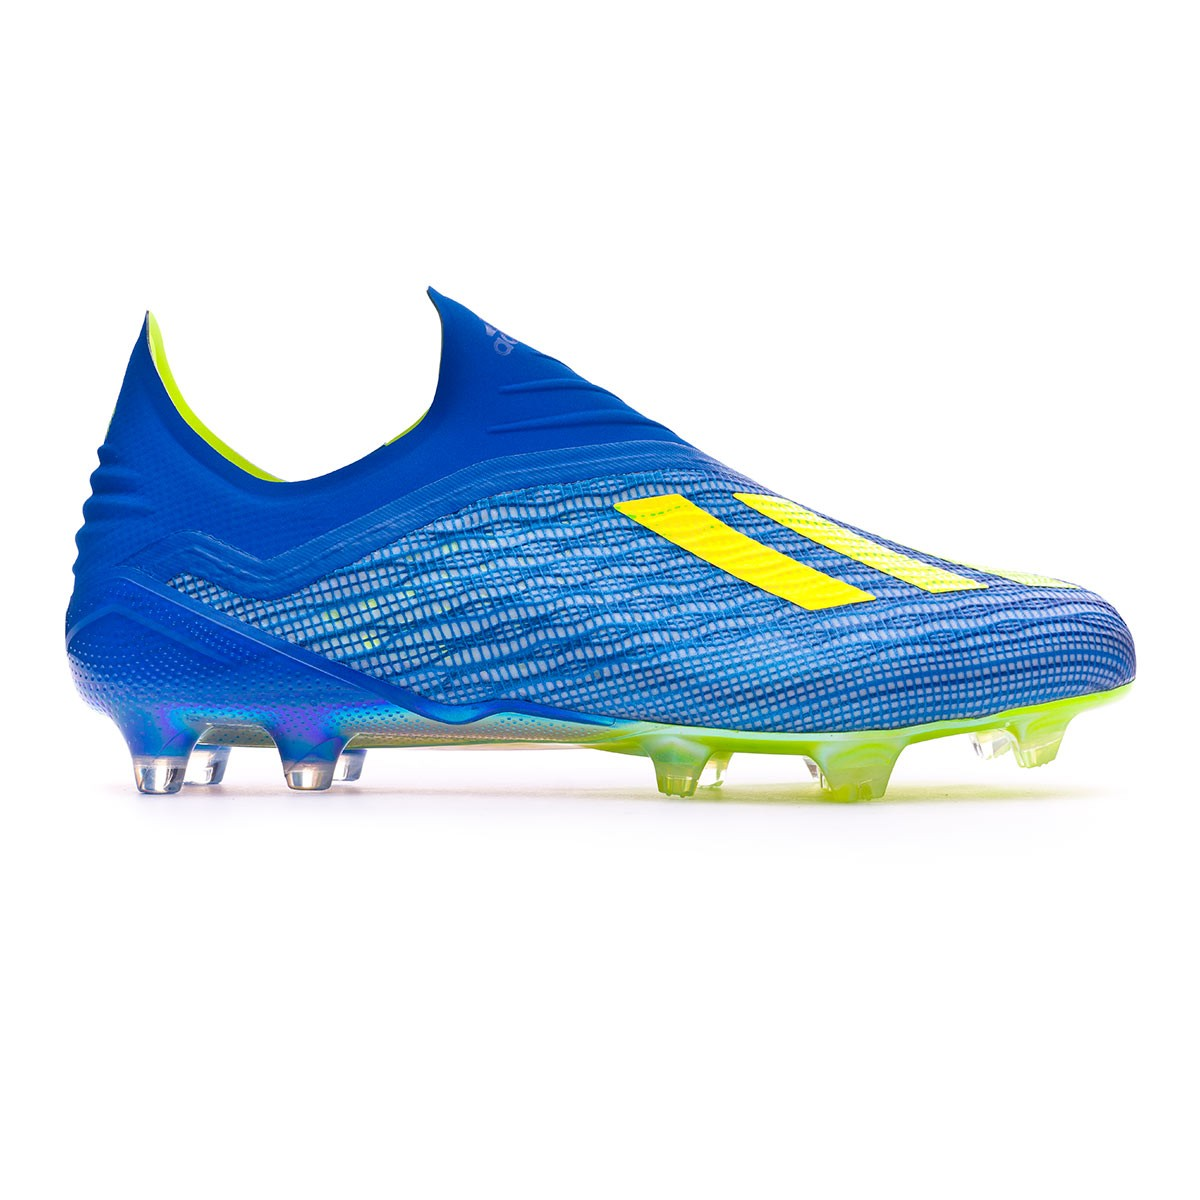 info for 6cd6a afae2 Scarpe adidas X 18+ FG Foot blue-Solar yellow-Black - Negozio di calcio  Fútbol Emotion